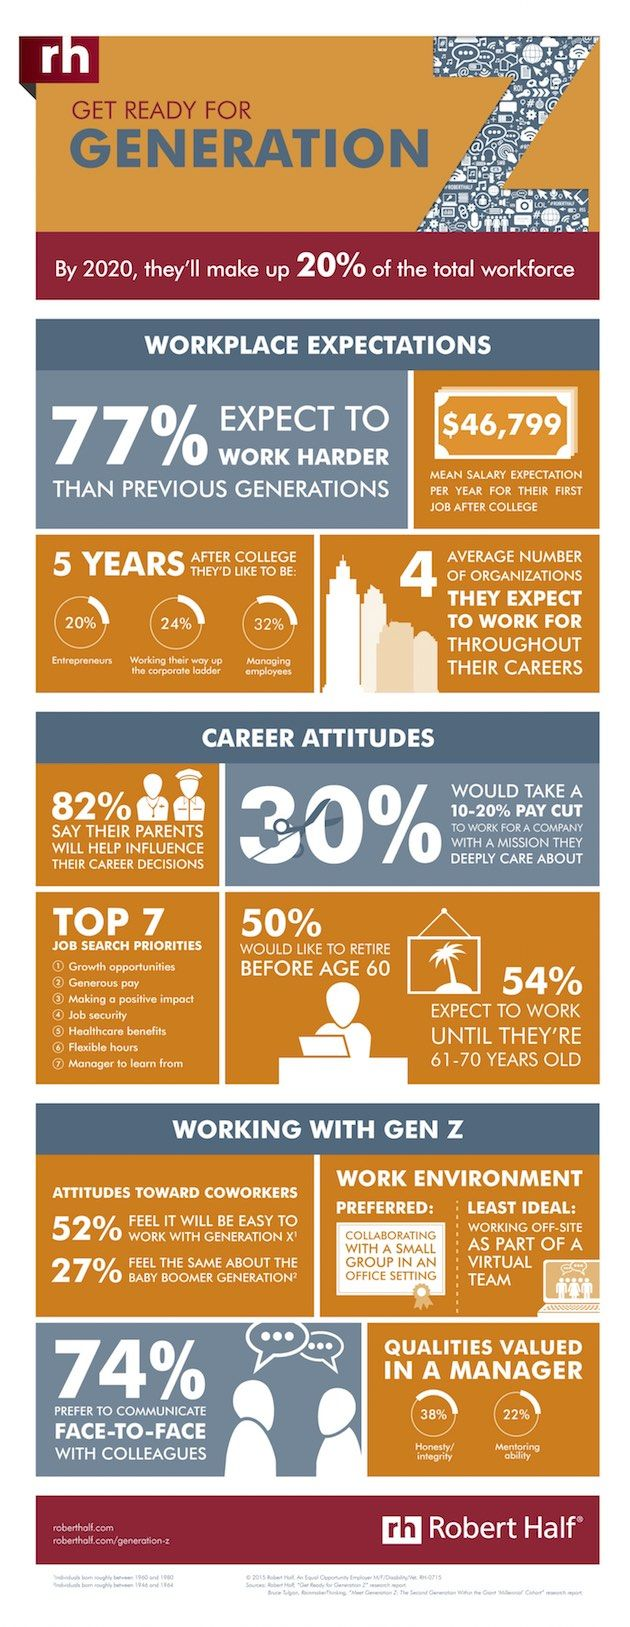 Career Management - How Generation Z Feels About Work and Careers [Infographic] : MarketingProfs Article